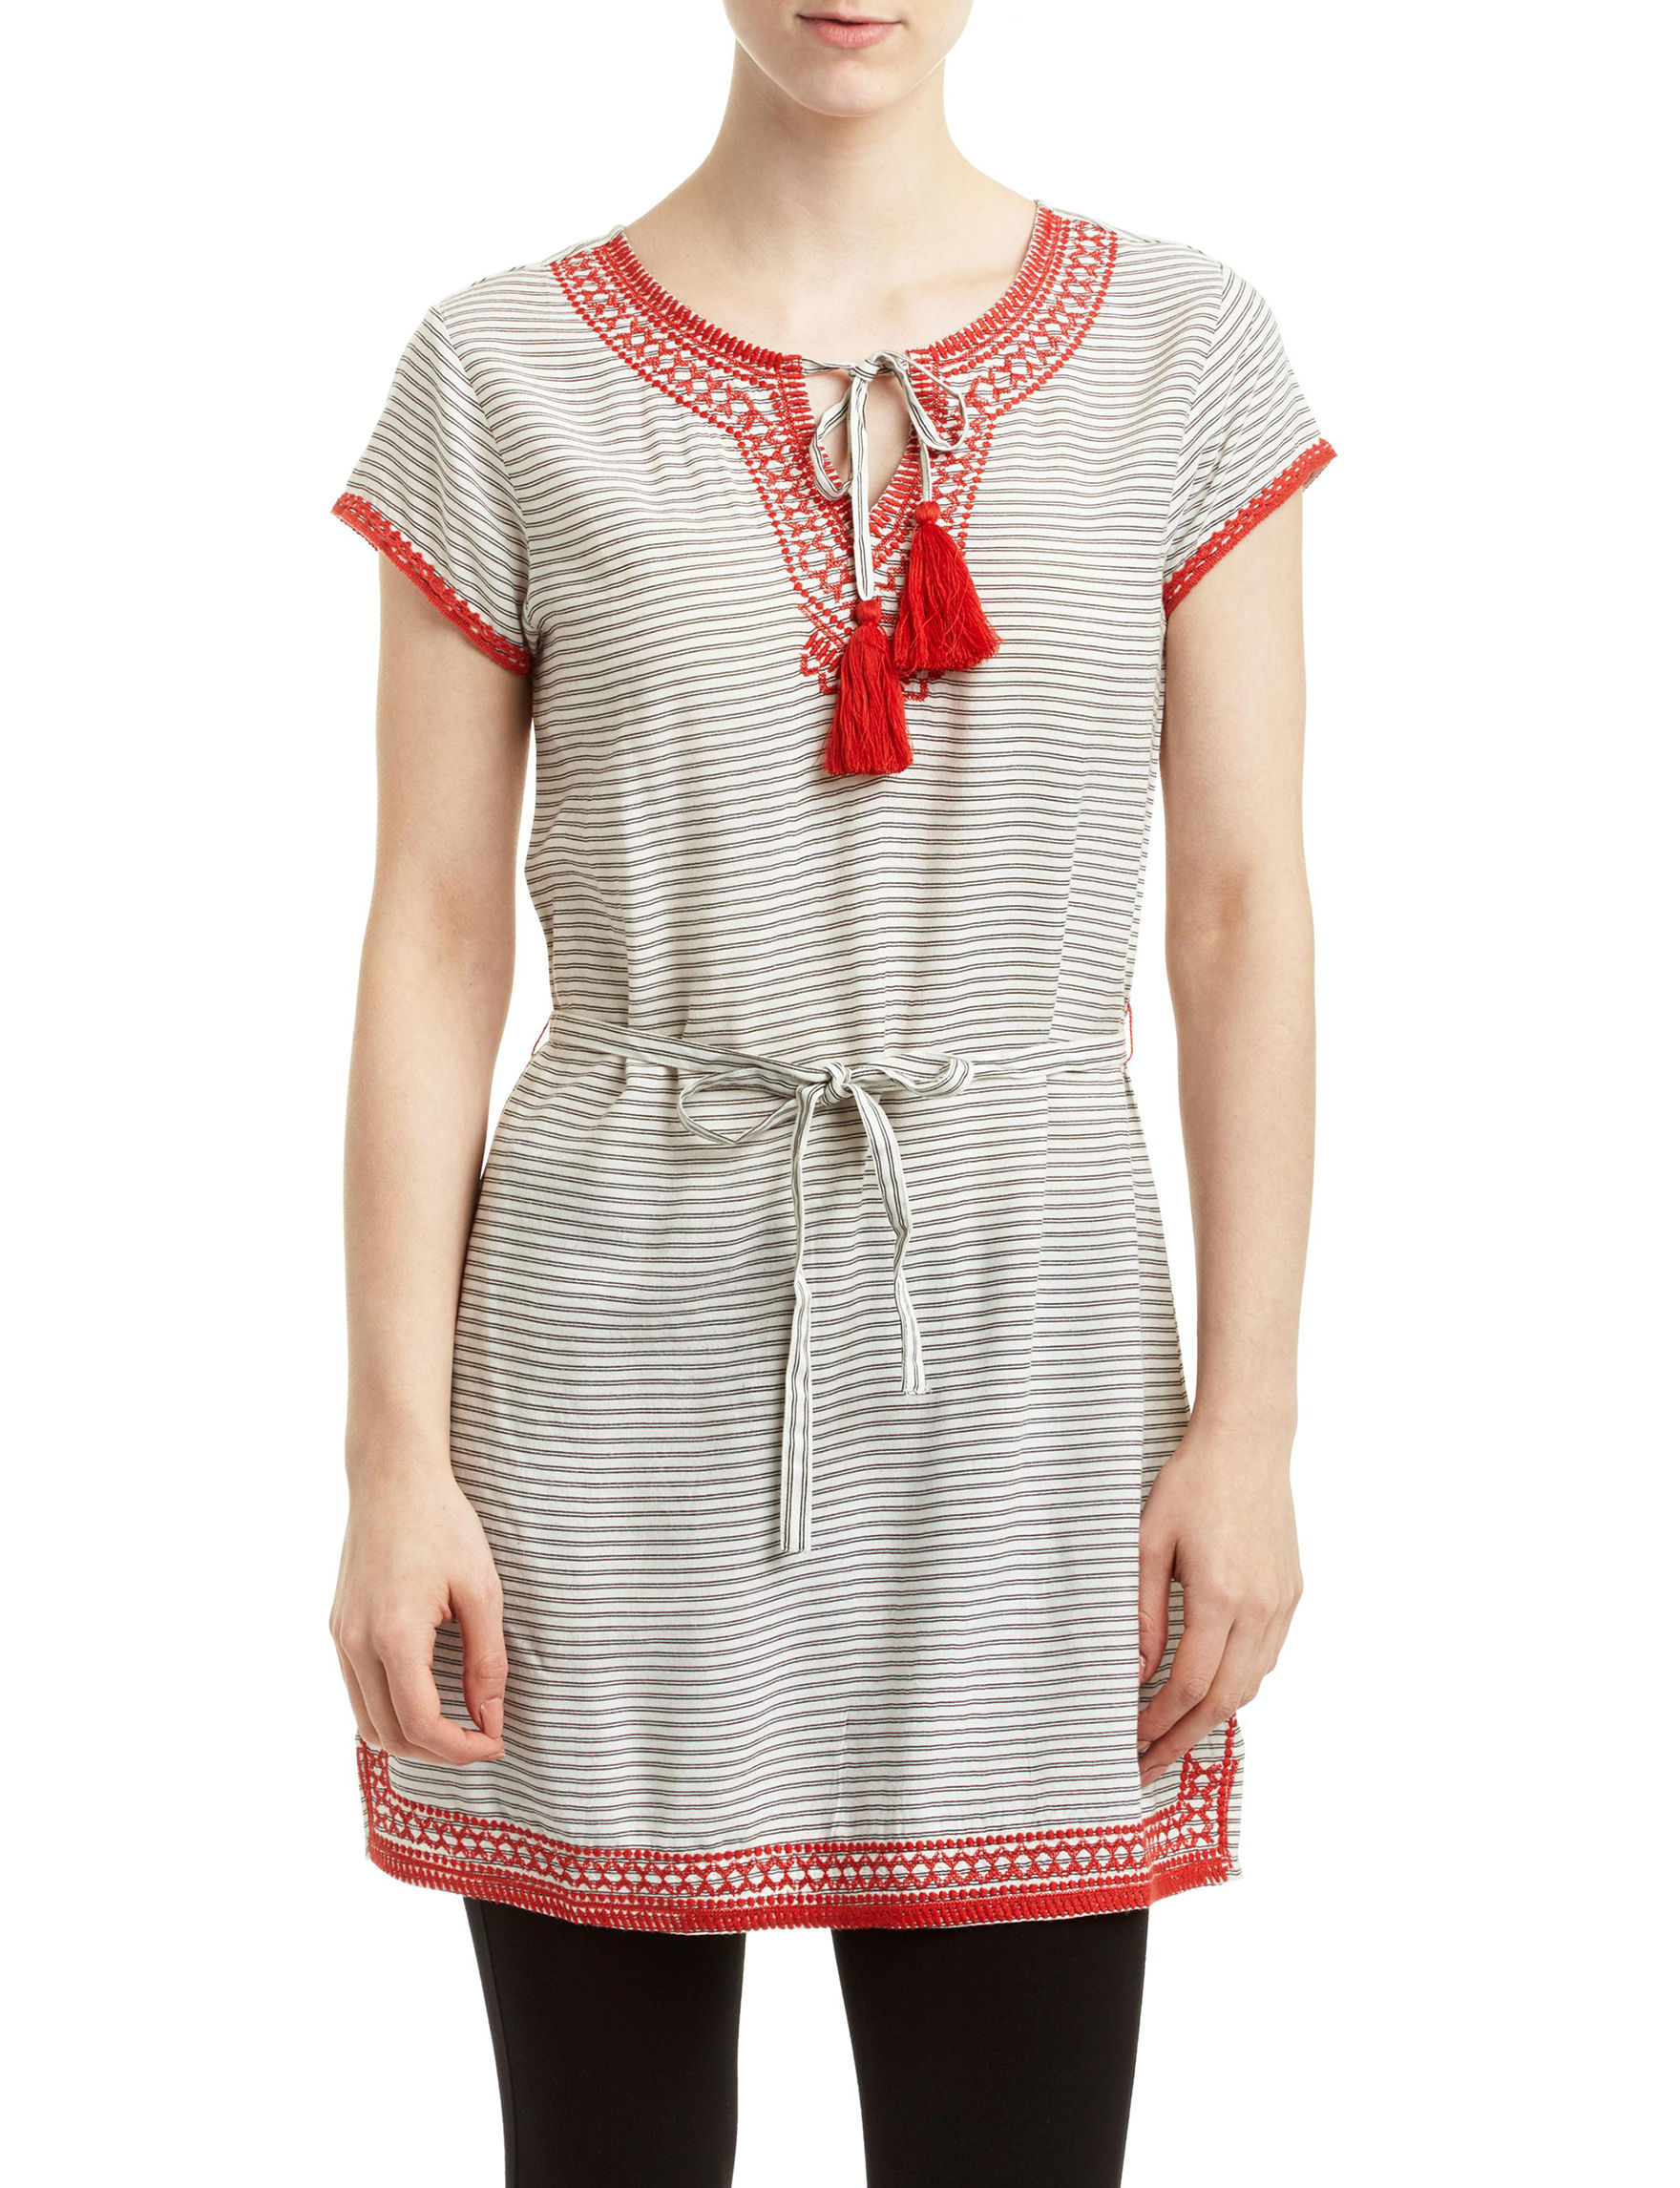 Romeo + Juliet Couture White / Red Everyday & Casual Shirt Dresses